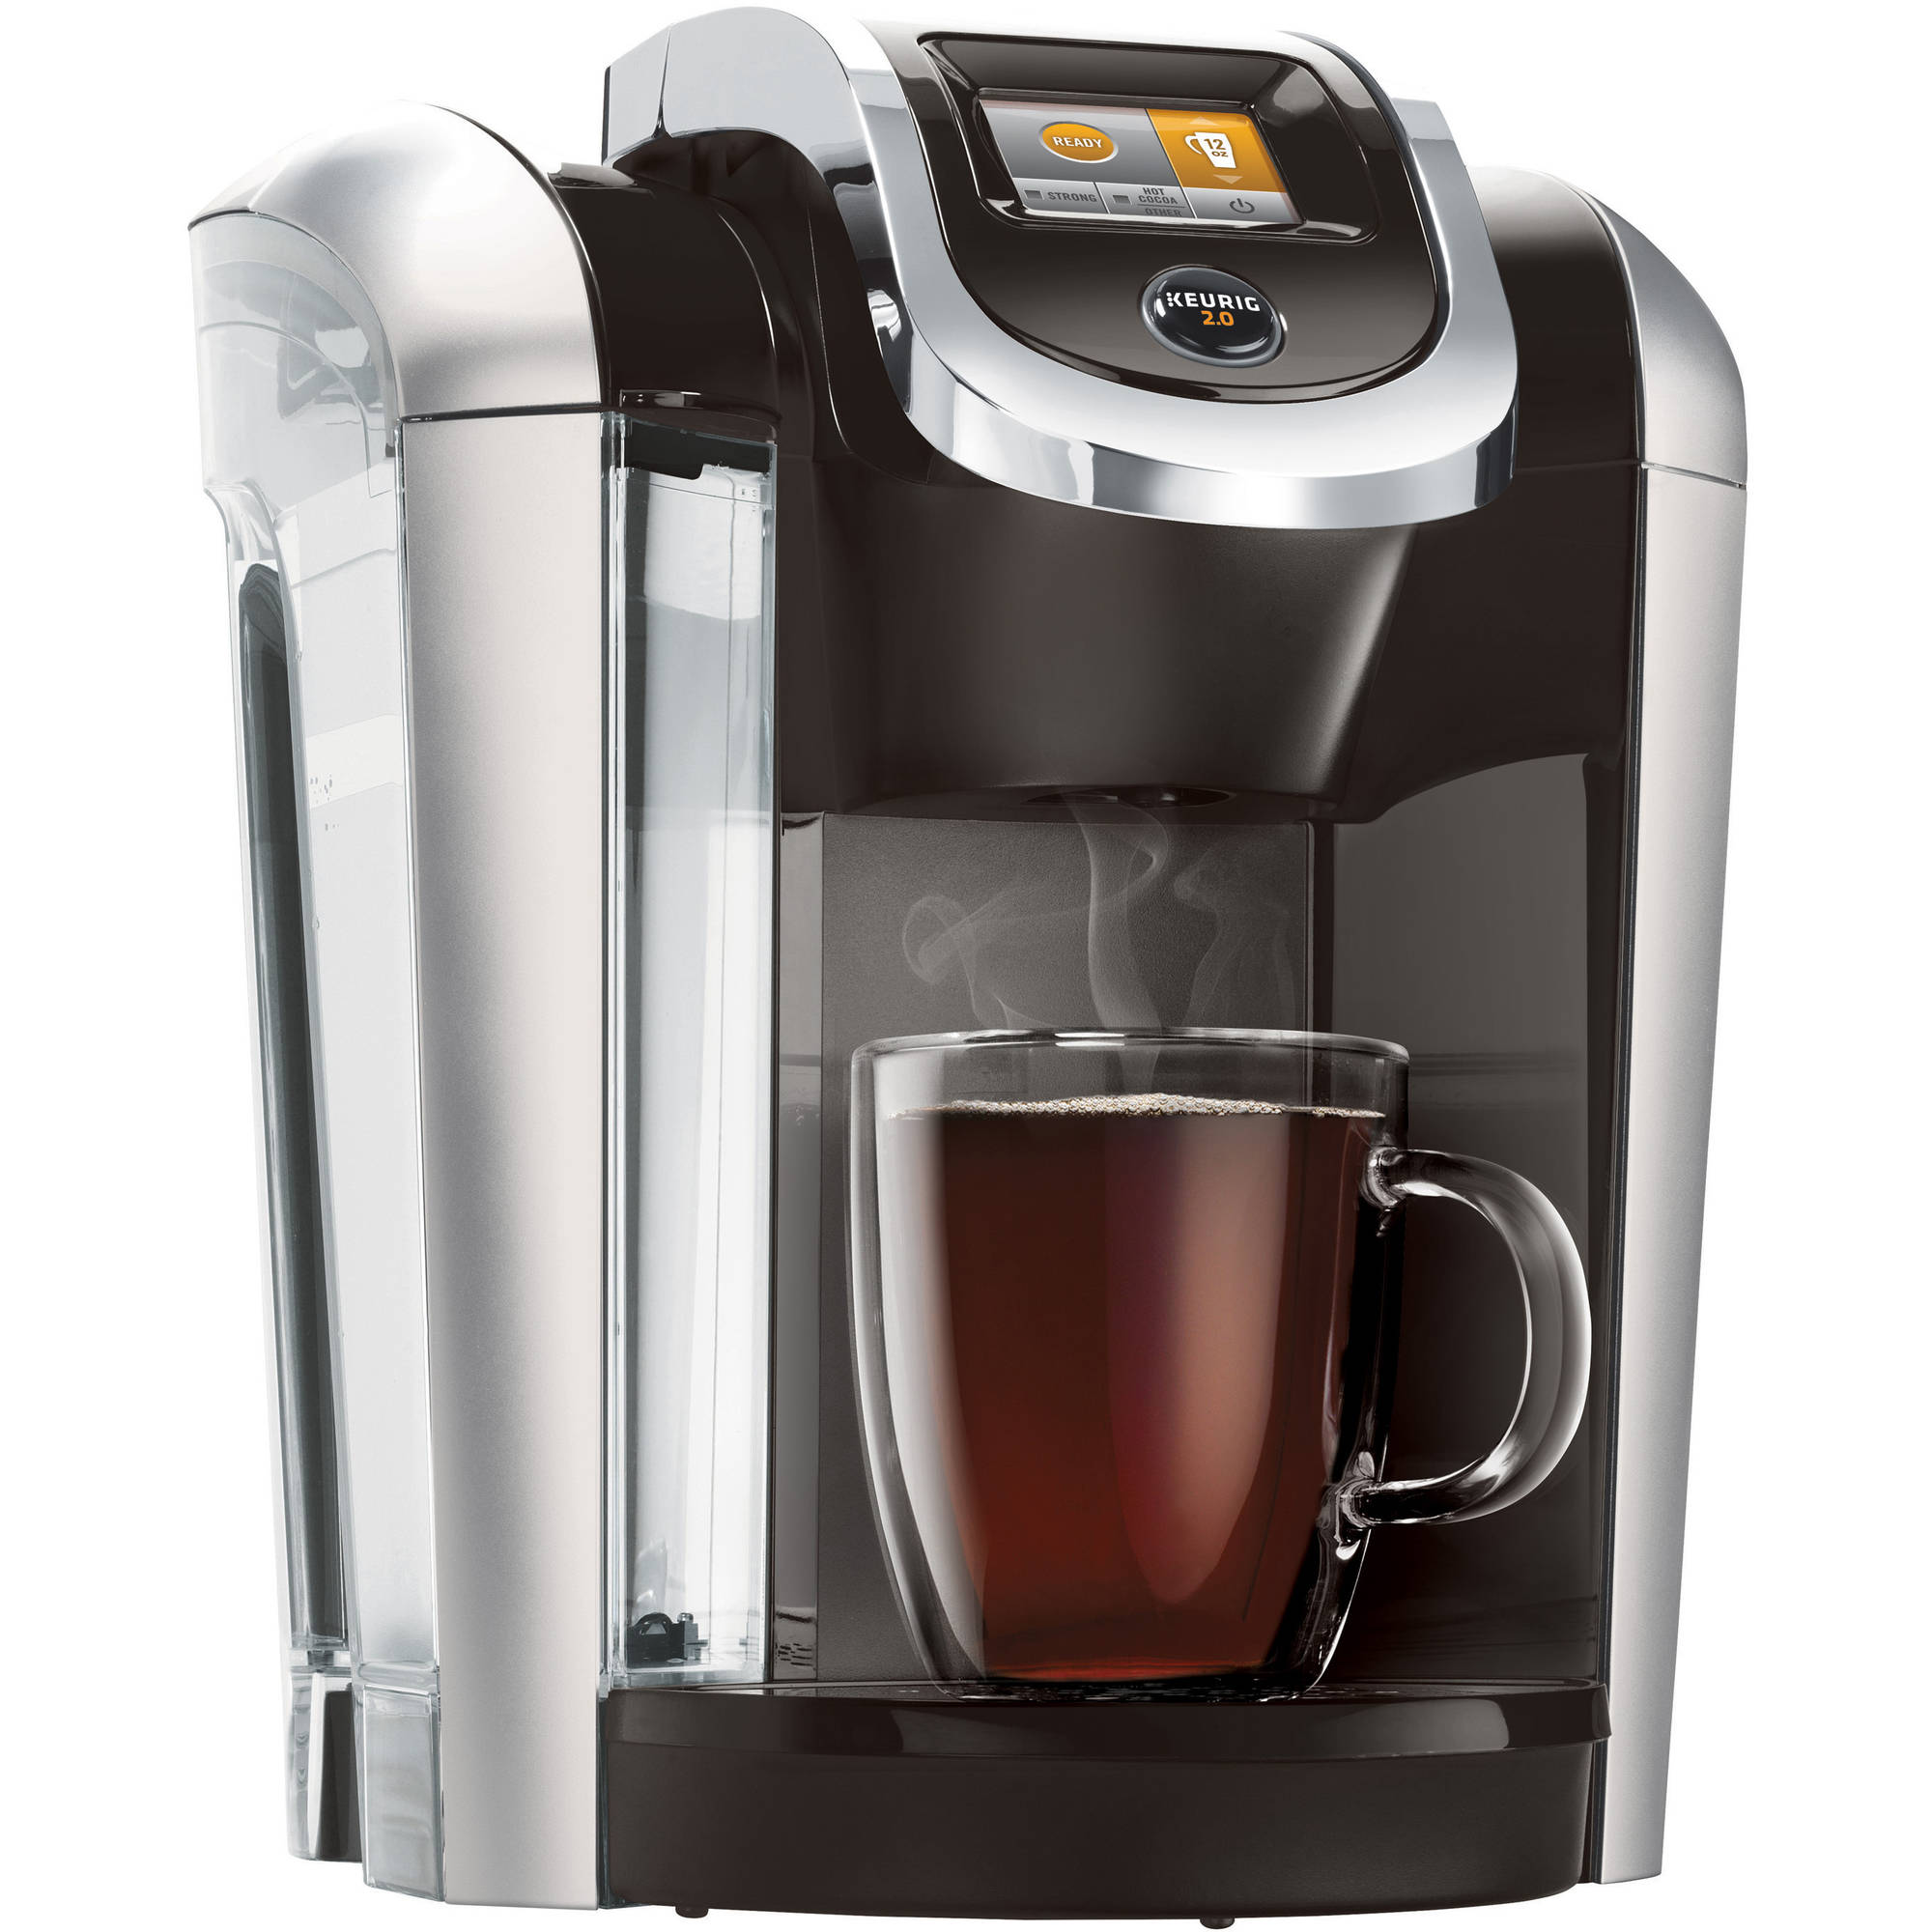 Best Keurig coffee maker along with features. Keurig k & Keurig 55 models are pretty awesome but you need to read these best Keurig coffee maker reviews.